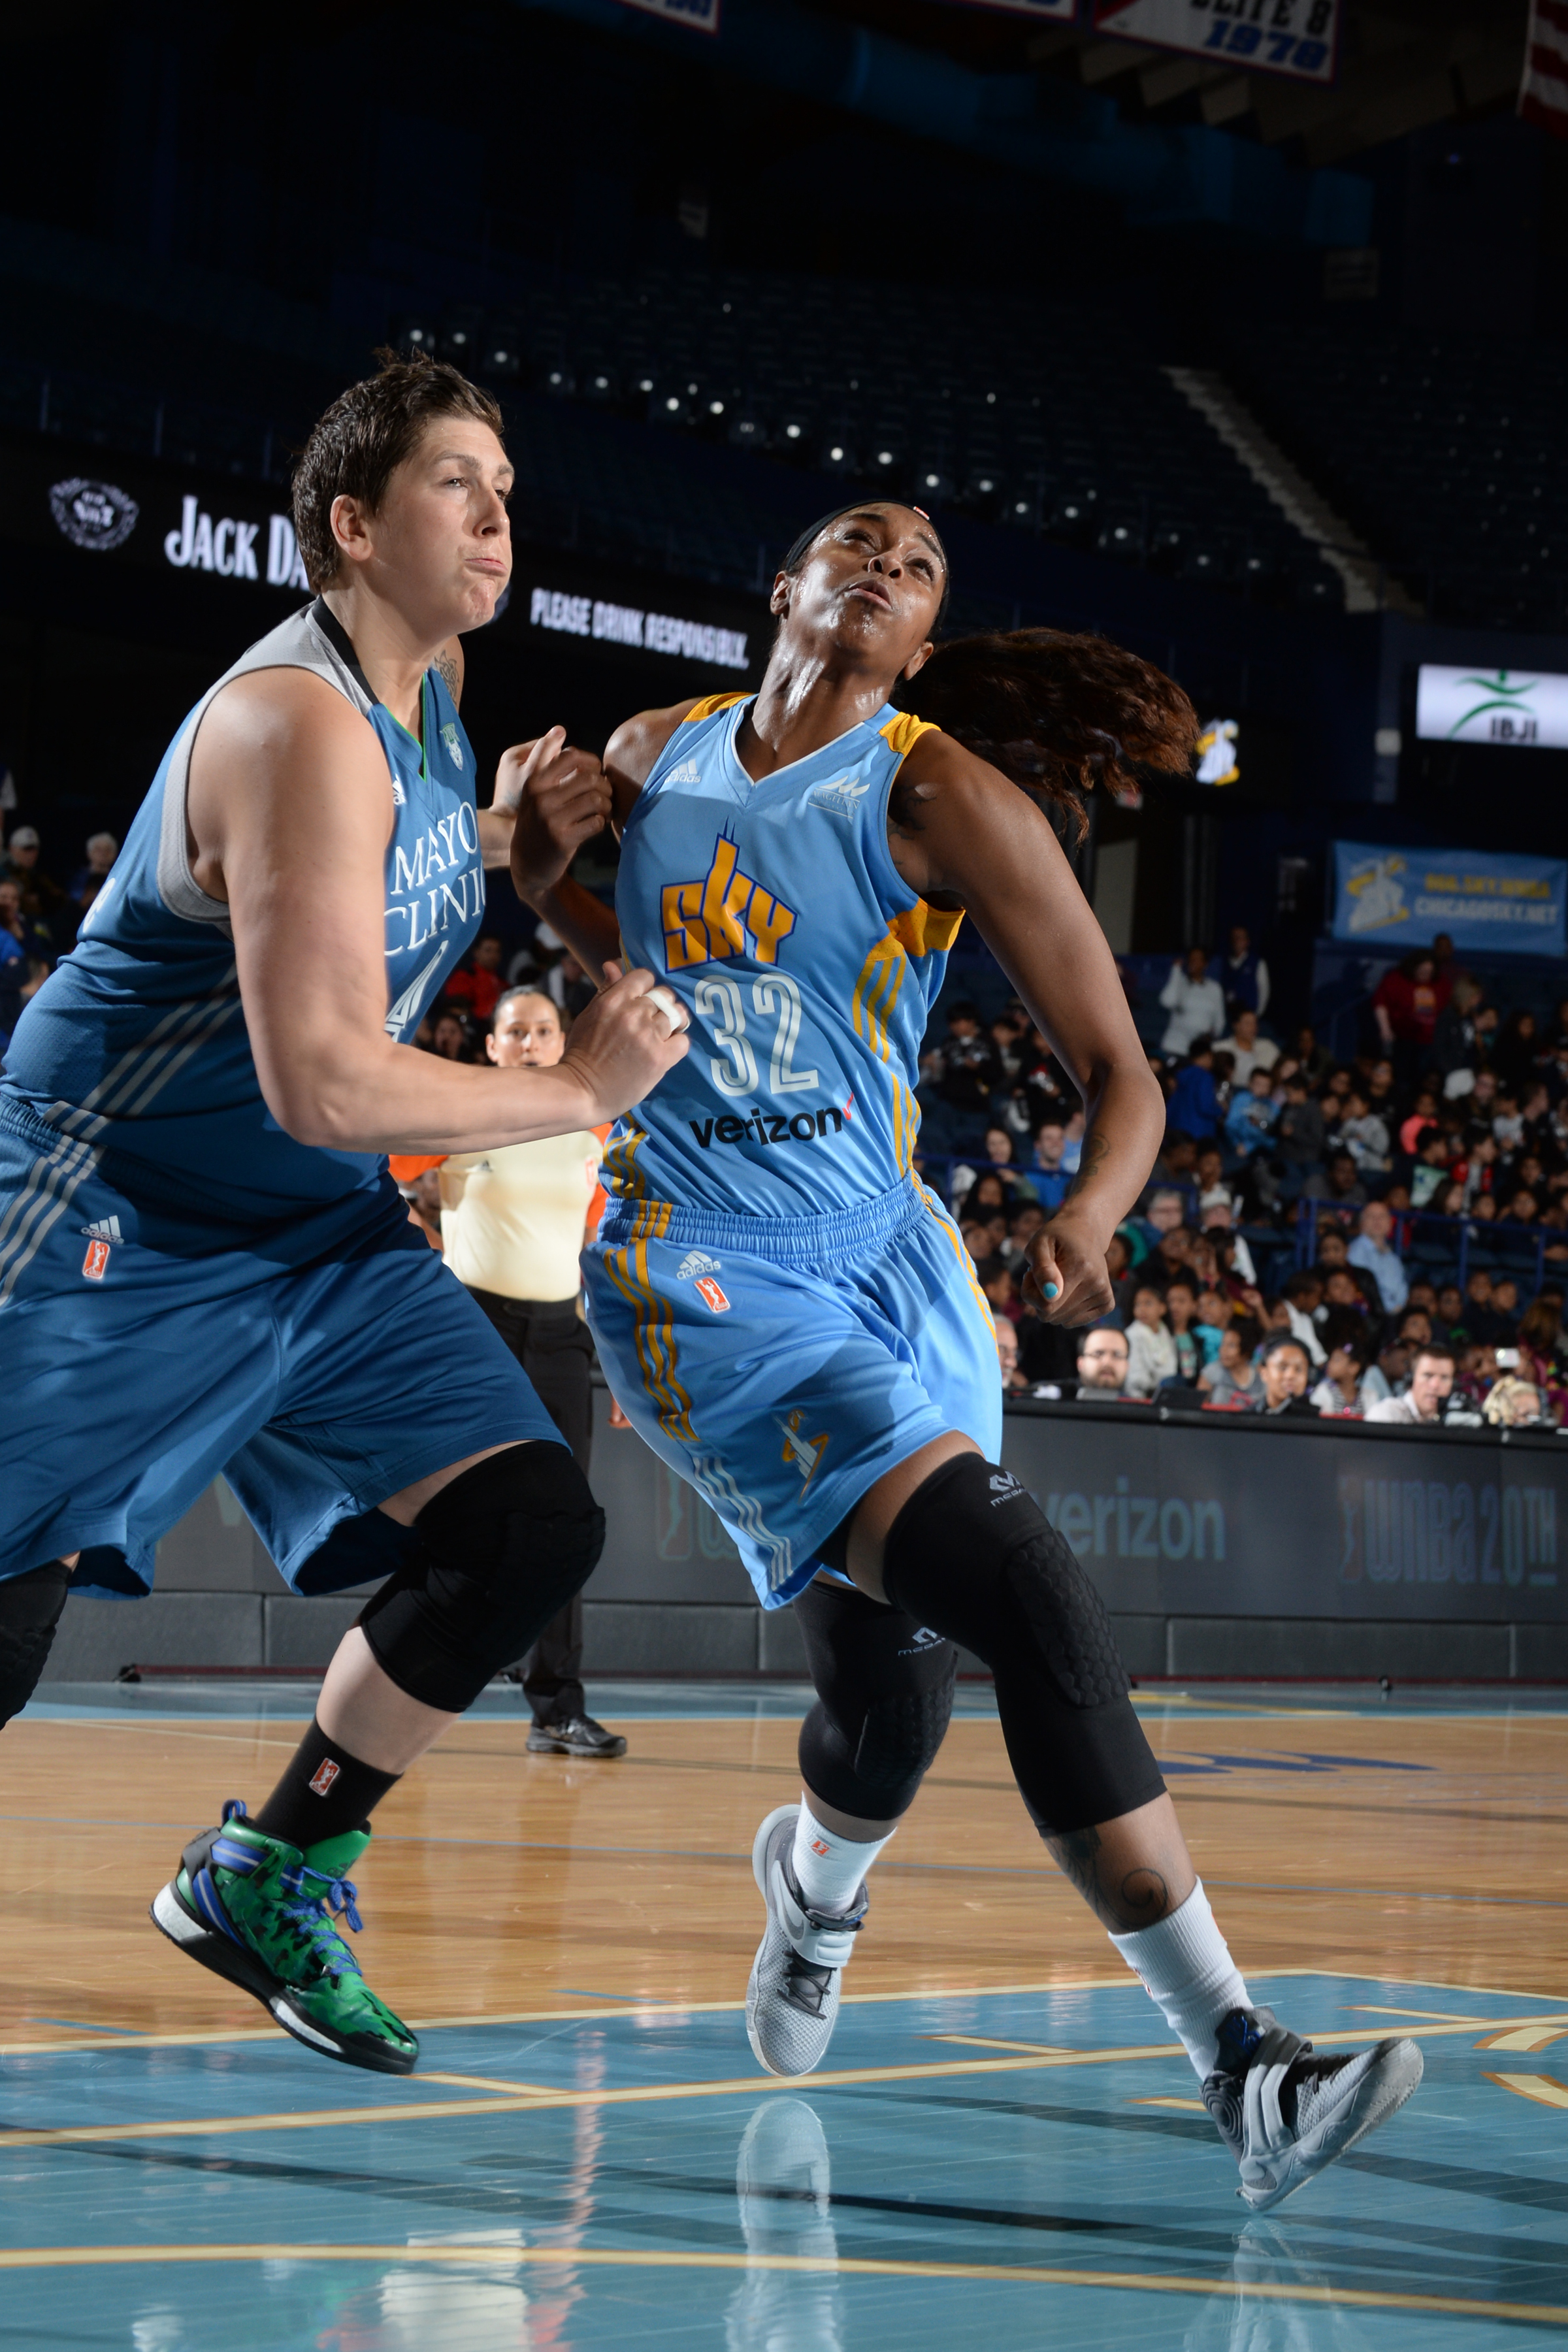 ROSEMONT, IL- MAY 18: Cheyenne Parker #32 of the Chicago Sky fights for position against Janel McCarville #4 of the Minnesota Lynx on May 18, 2016 at the Allstate Arena in Rosemont, Illinois. NOTE TO USER: User expressly acknowledges and agrees that, by downloading and/or using this photograph, user is consenting to the terms and conditions of the Getty Images License Agreement. Mandatory Copyright Notice: Copyright 2016 NBAE (Photo by Randy Belice/NBAE via Getty Images)